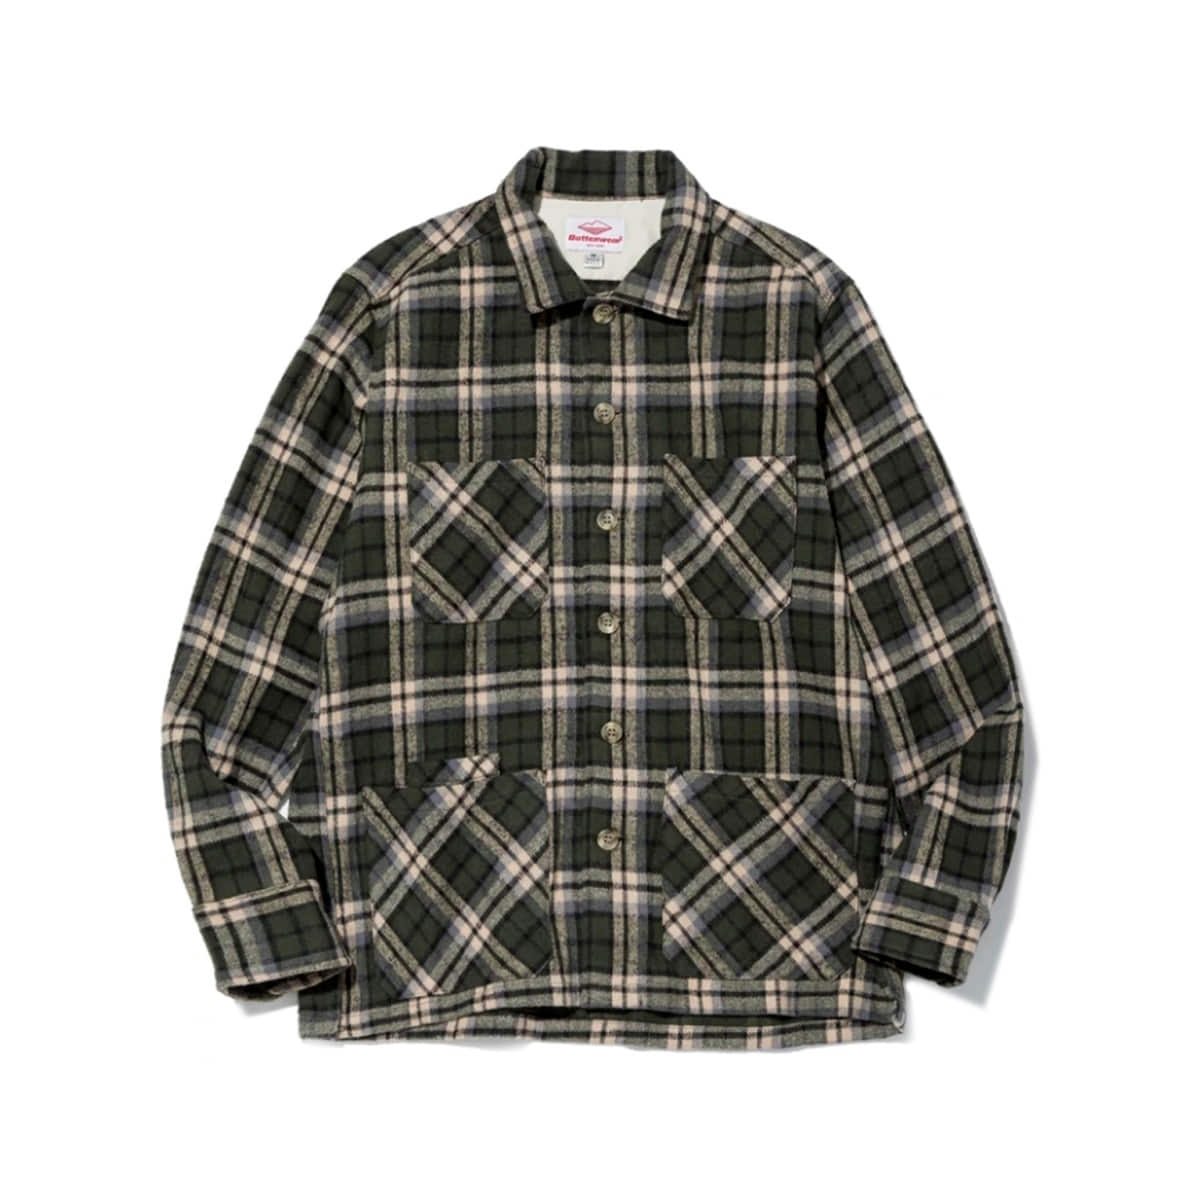 [BATTENWEAR] FIVE POCKET CANYON SHIRT 'GREEN PLAID'